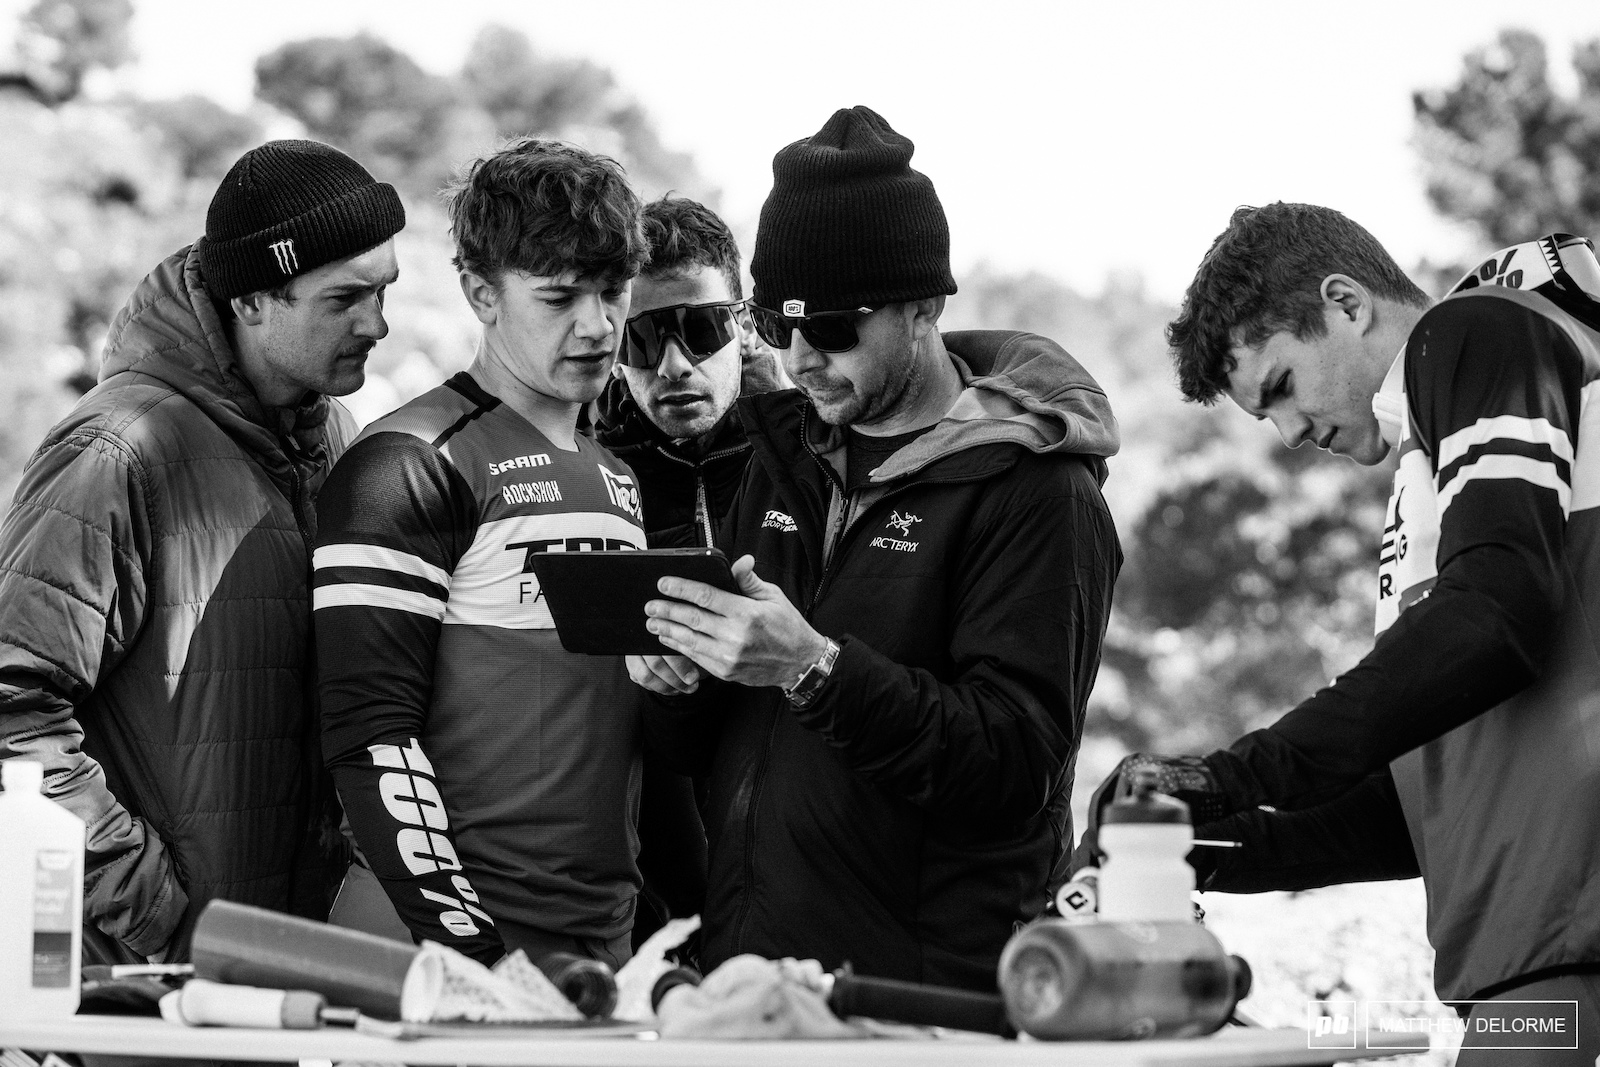 Ryan Gaul and the boys go over on track video during testing. Those bikes will be the best they can possibly be come race day.